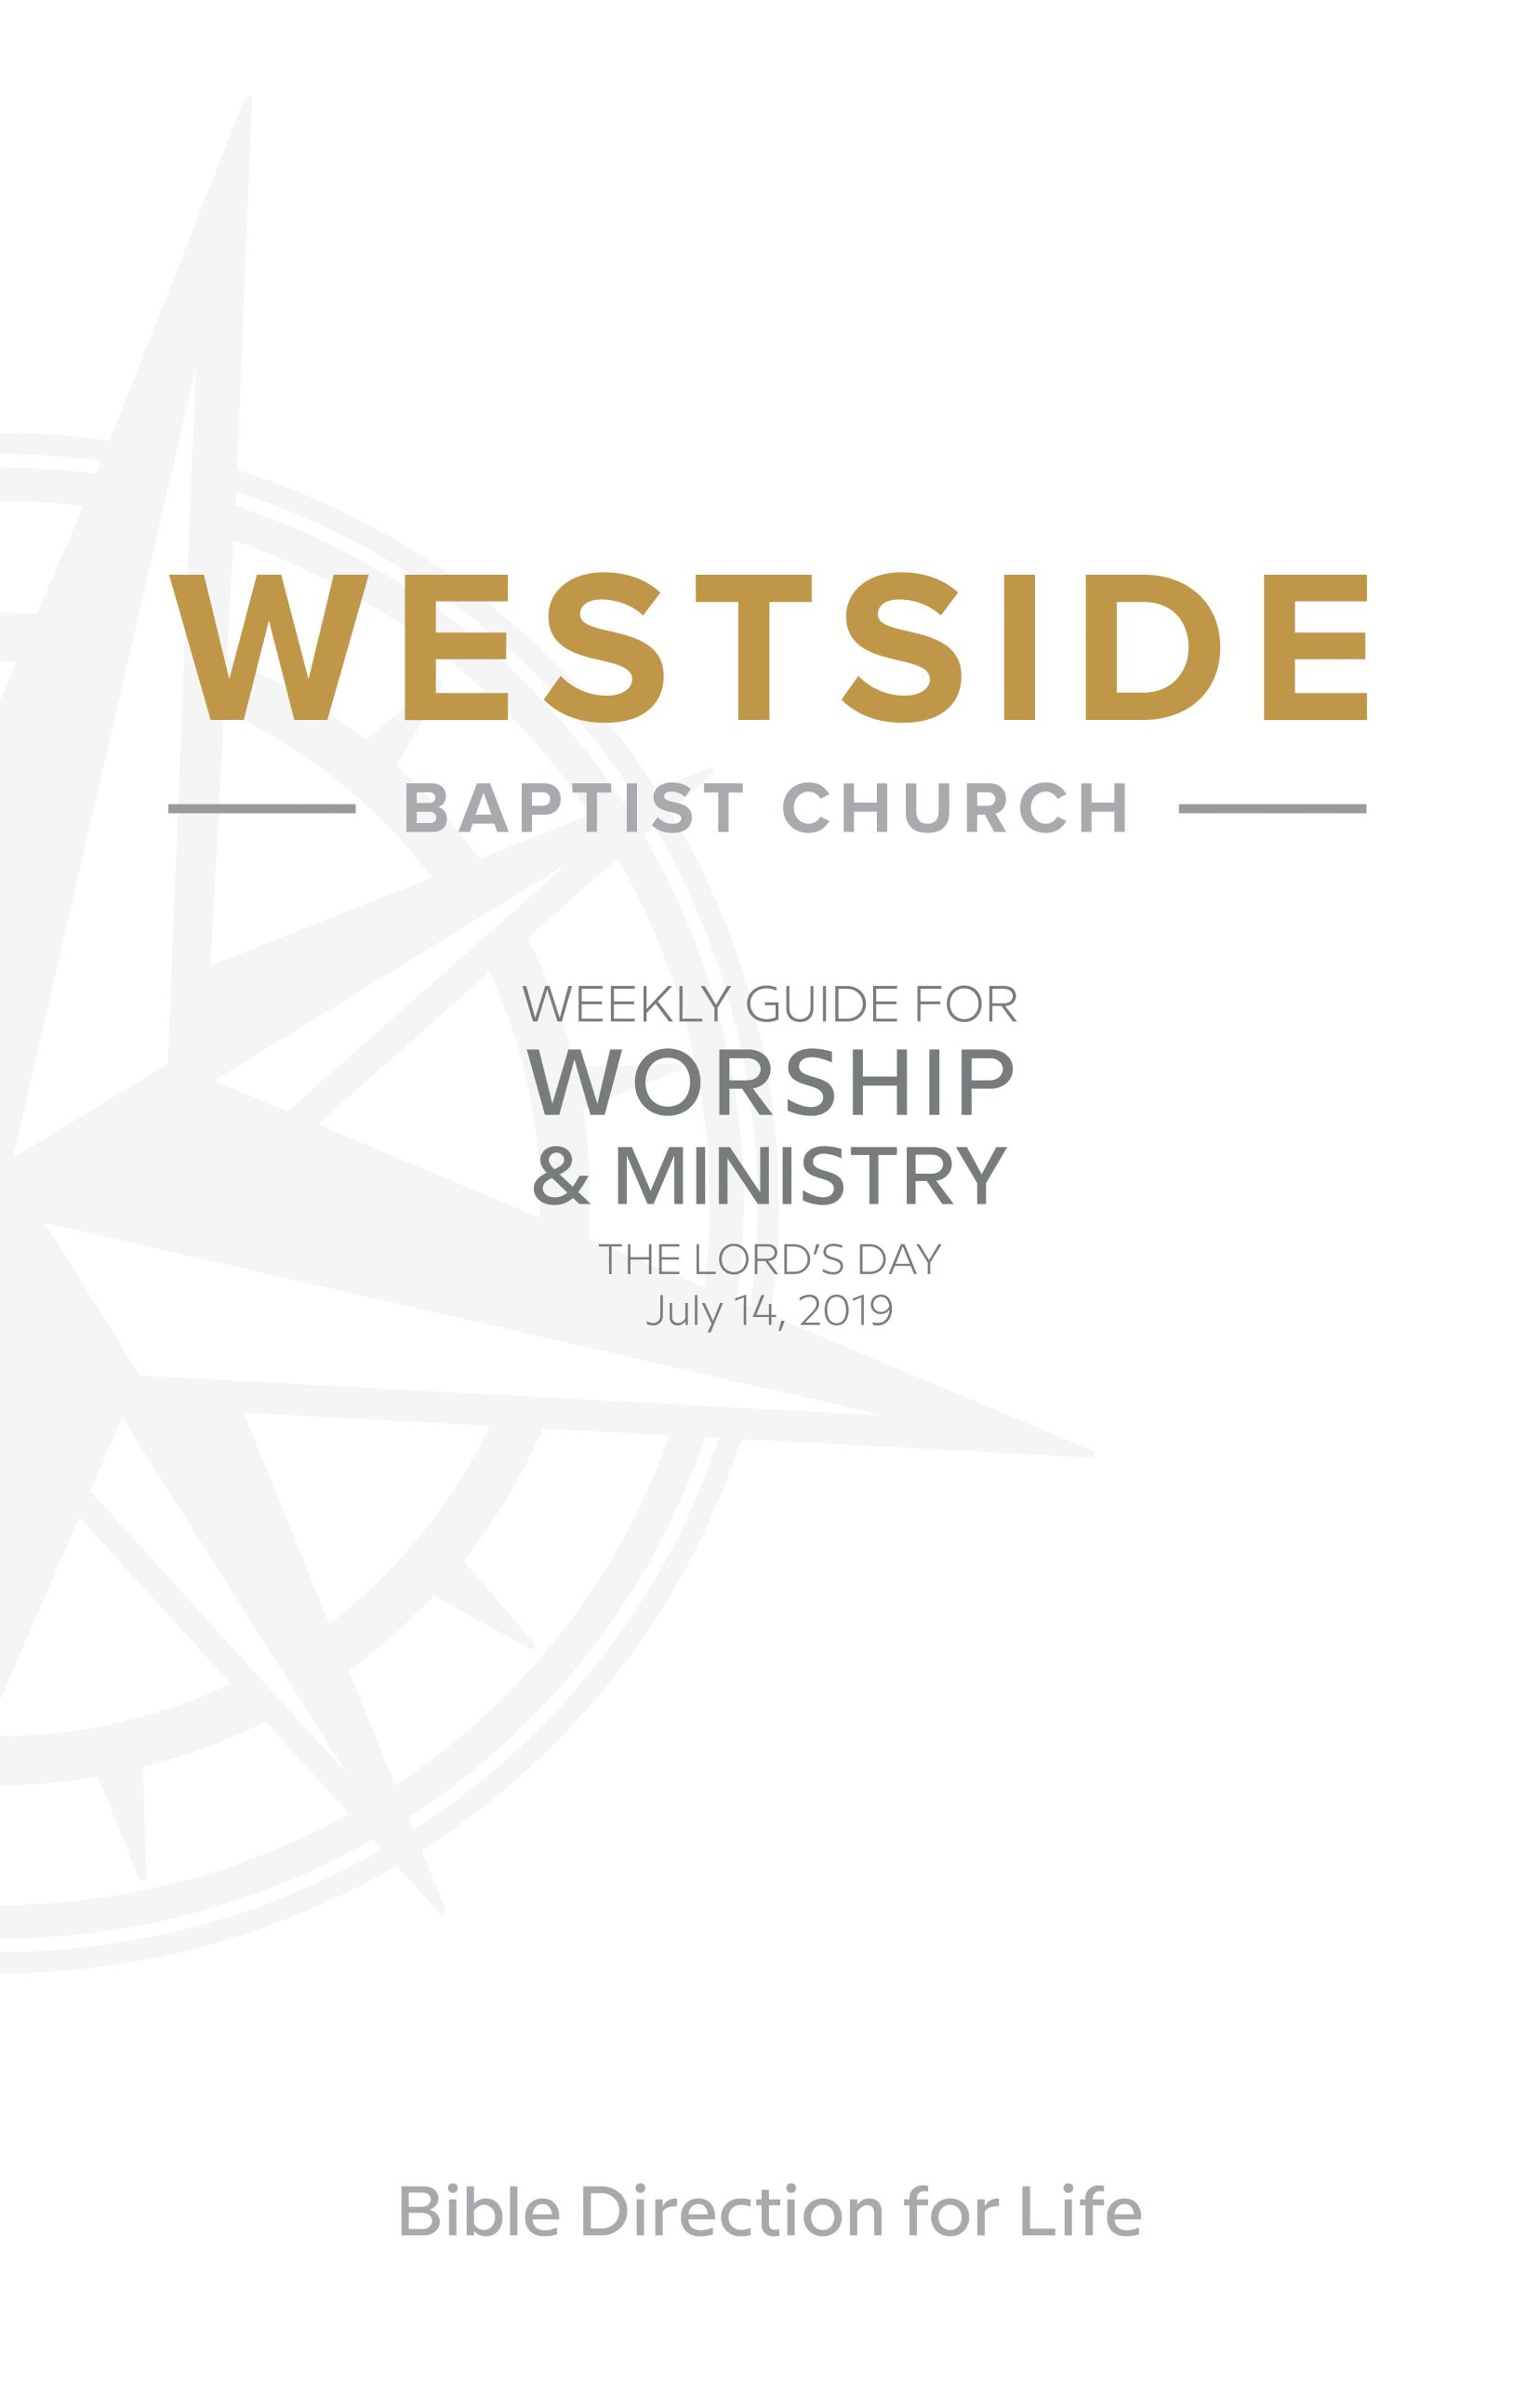 Weekly Guide for Worship and Ministry—July 14